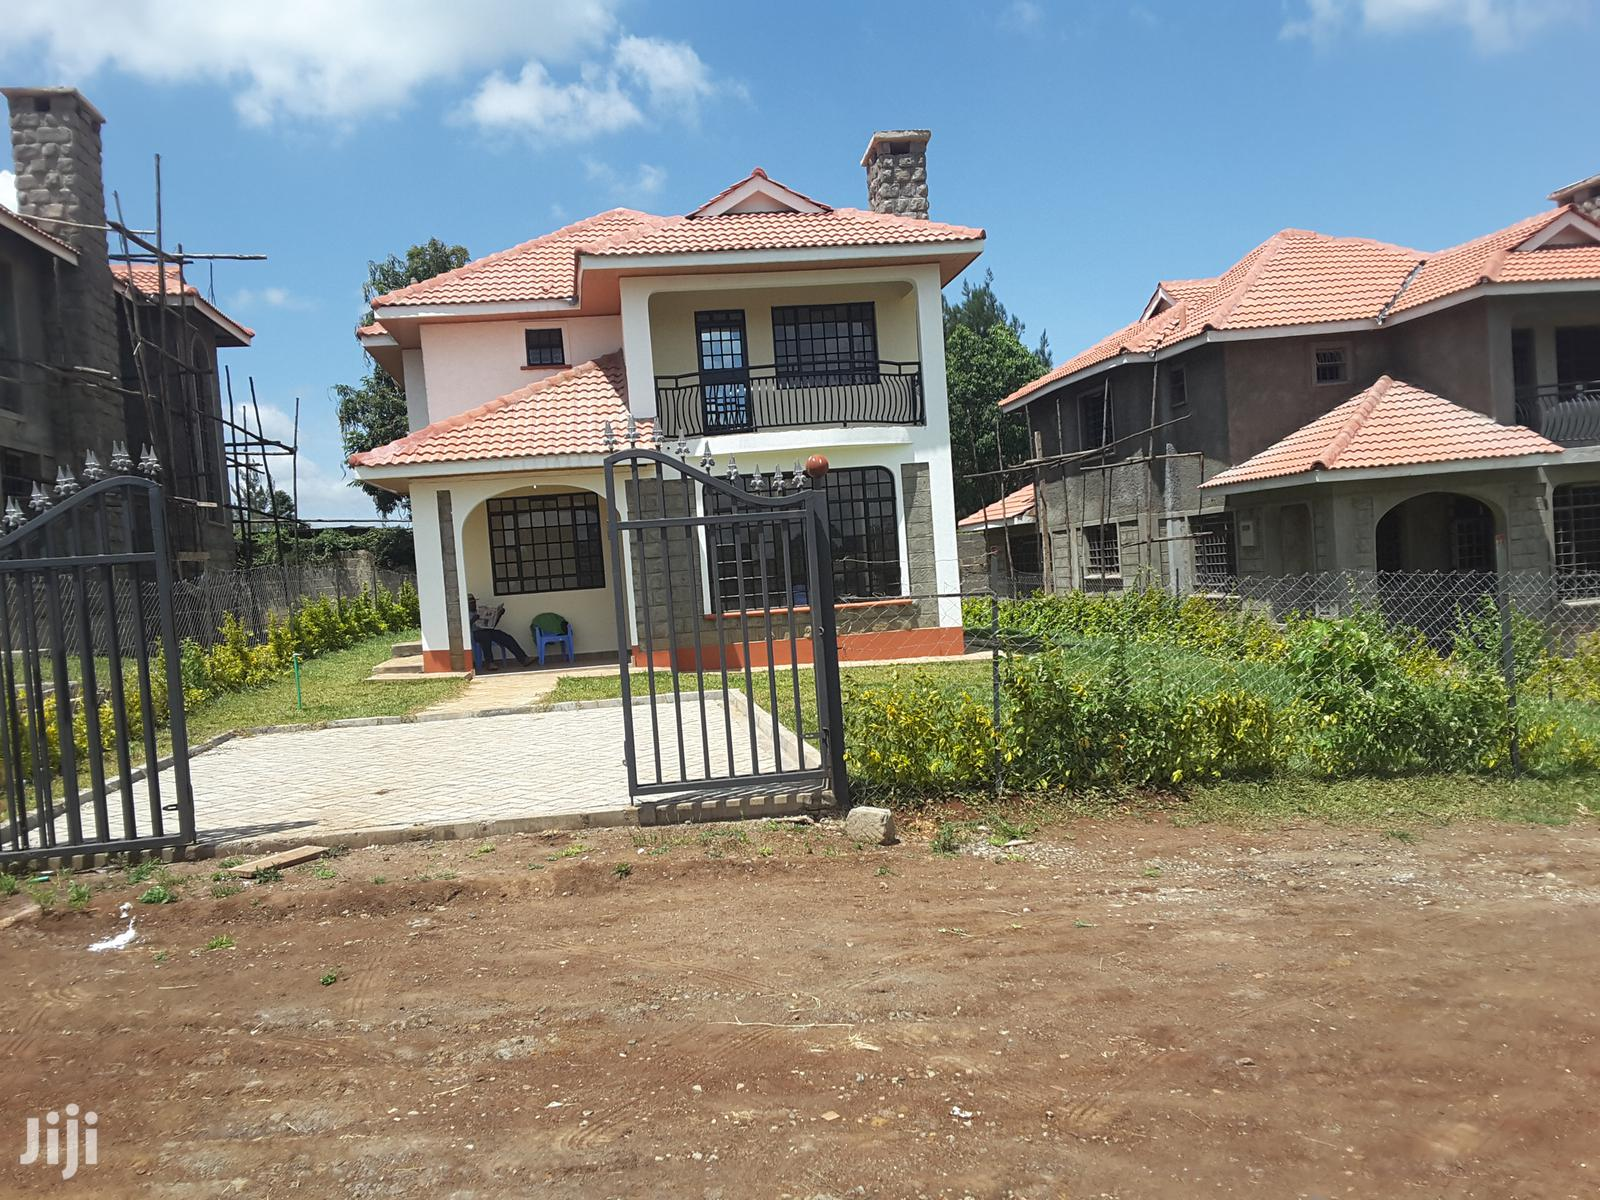 4 BR Houses Plus Sqs In Ngong | Houses & Apartments For Sale for sale in Ngong, Kajiado, Kenya